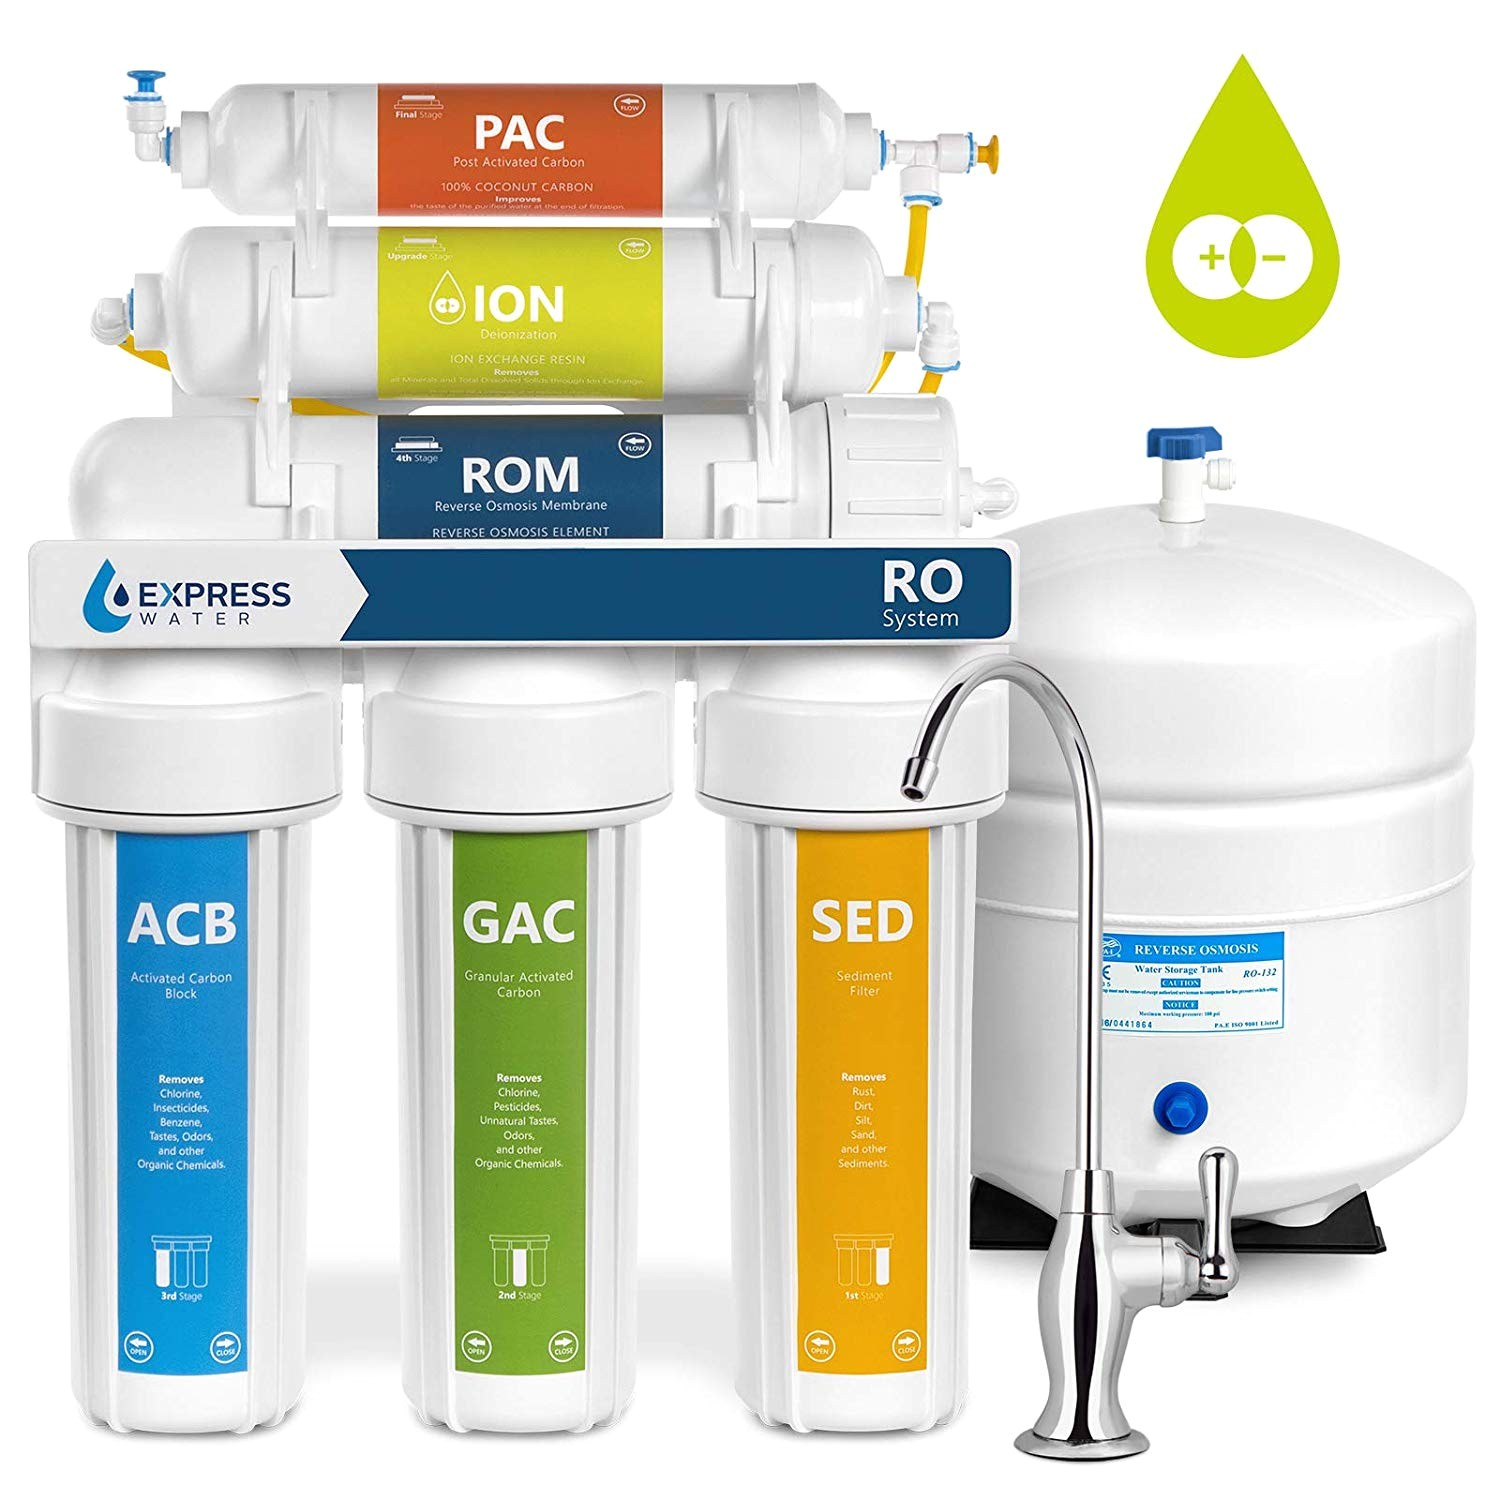 express water deionization reverse osmosis water filtration system 6 stage ro di water filter with faucet and tank distilled pure under sink home